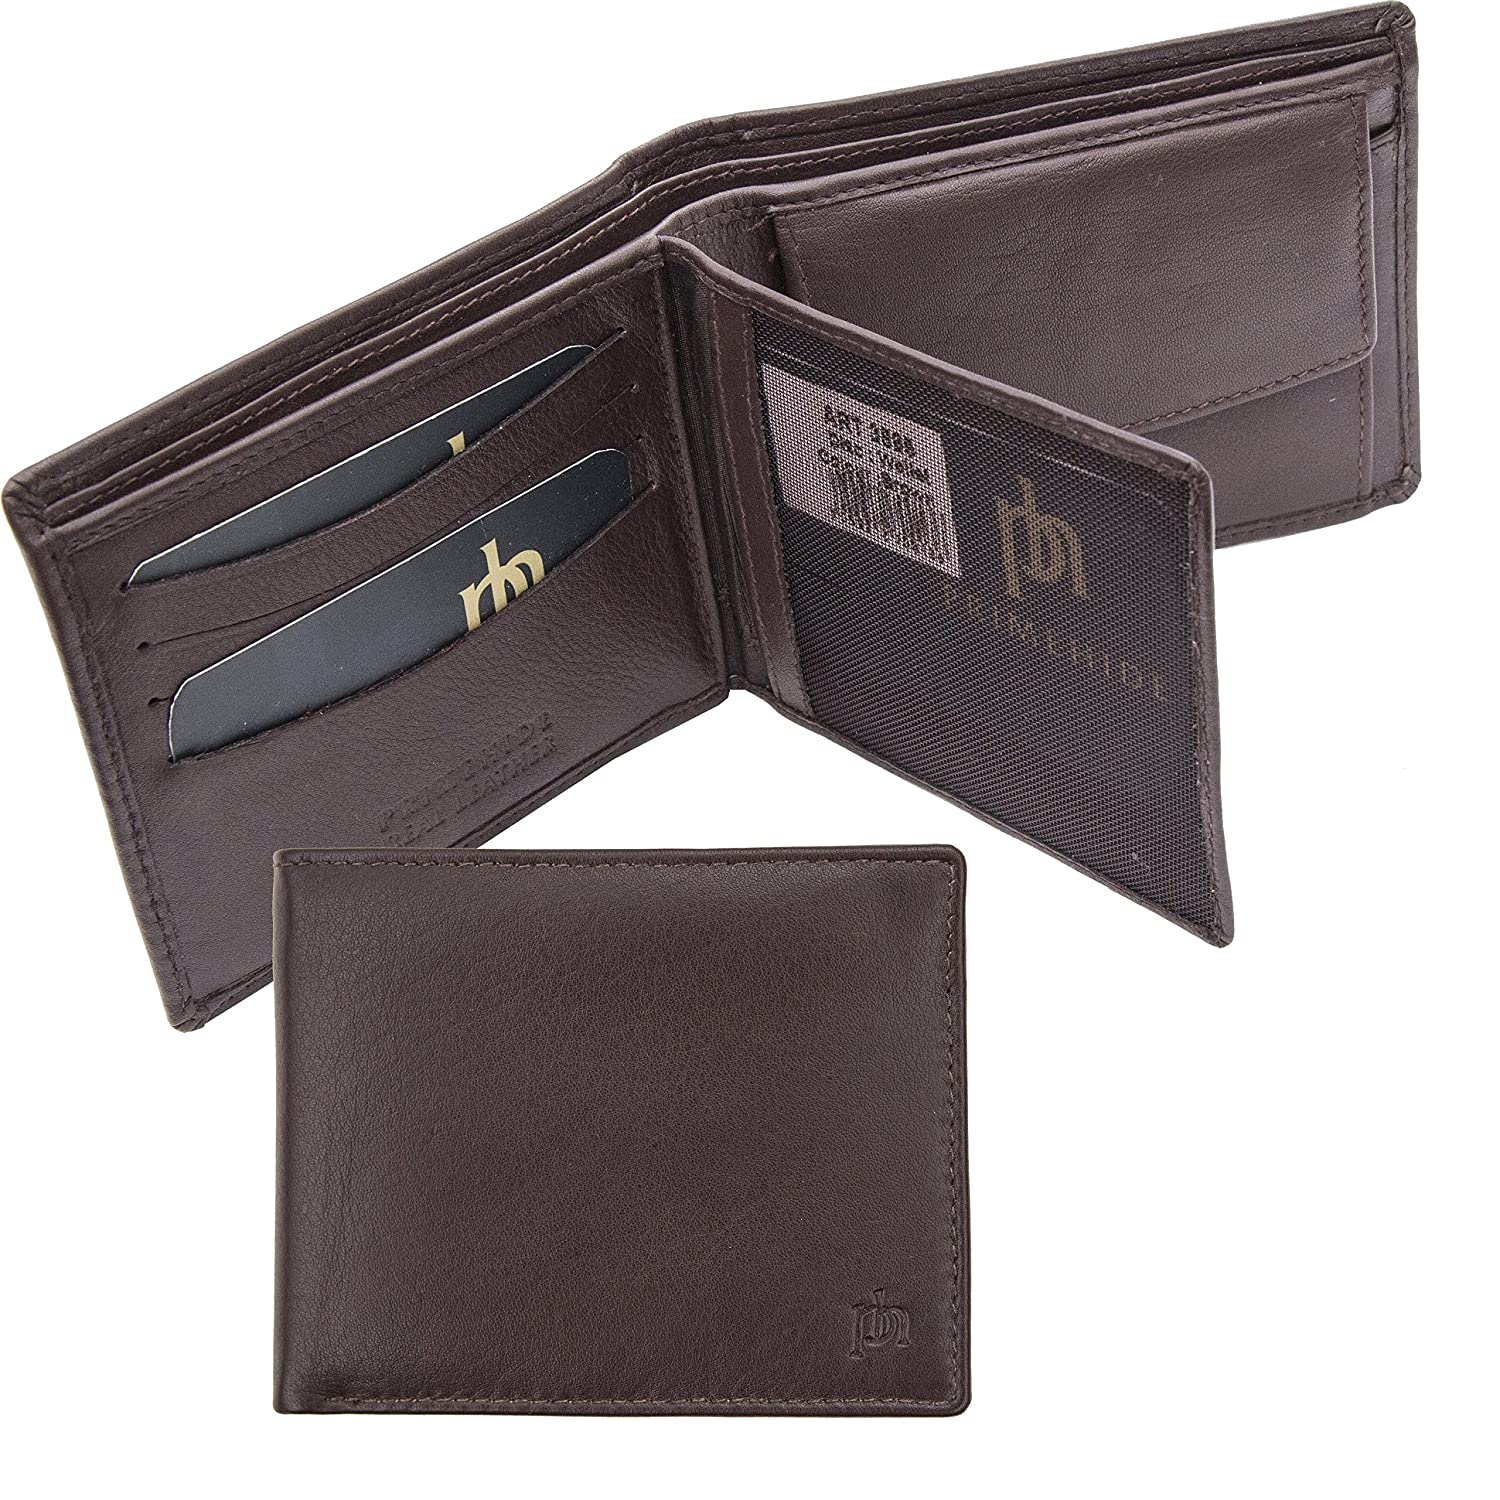 Prime Hide Mens Soft Brown Leather Wallet with Coin Purse - 03898